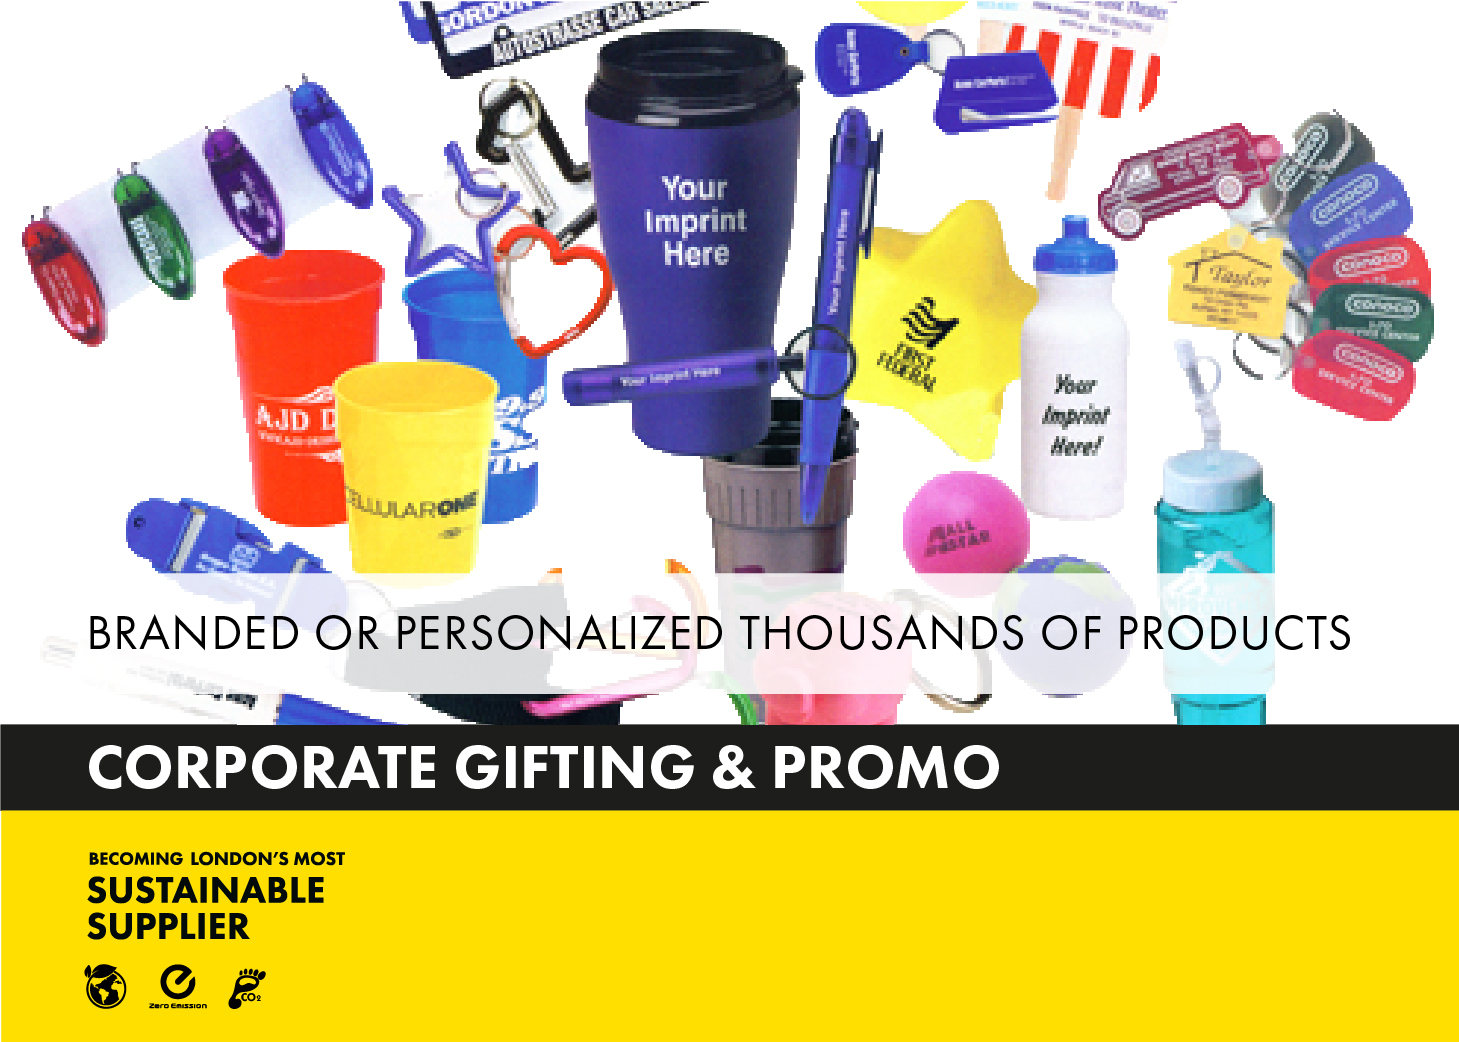 Corporate Gifting & Promo